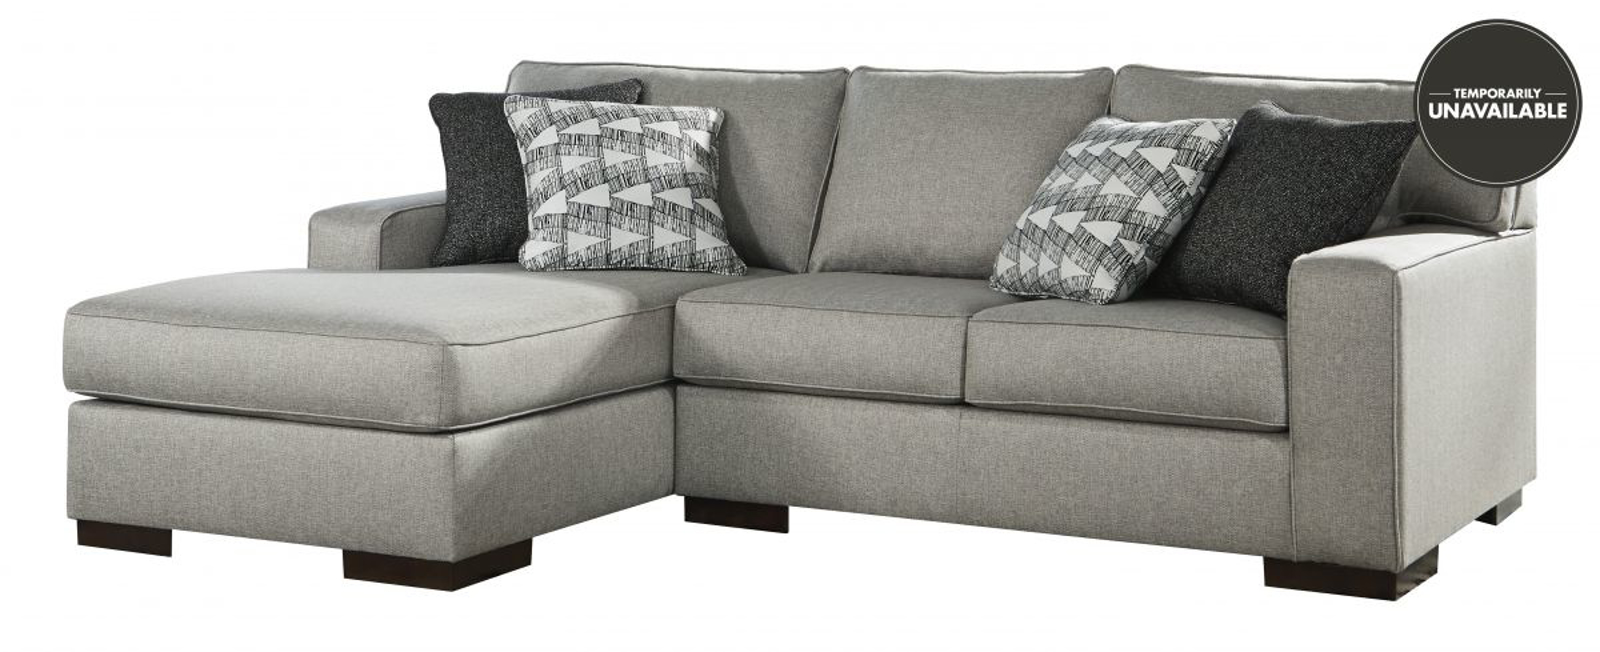 Picture of Marsing Nuvella Sectional